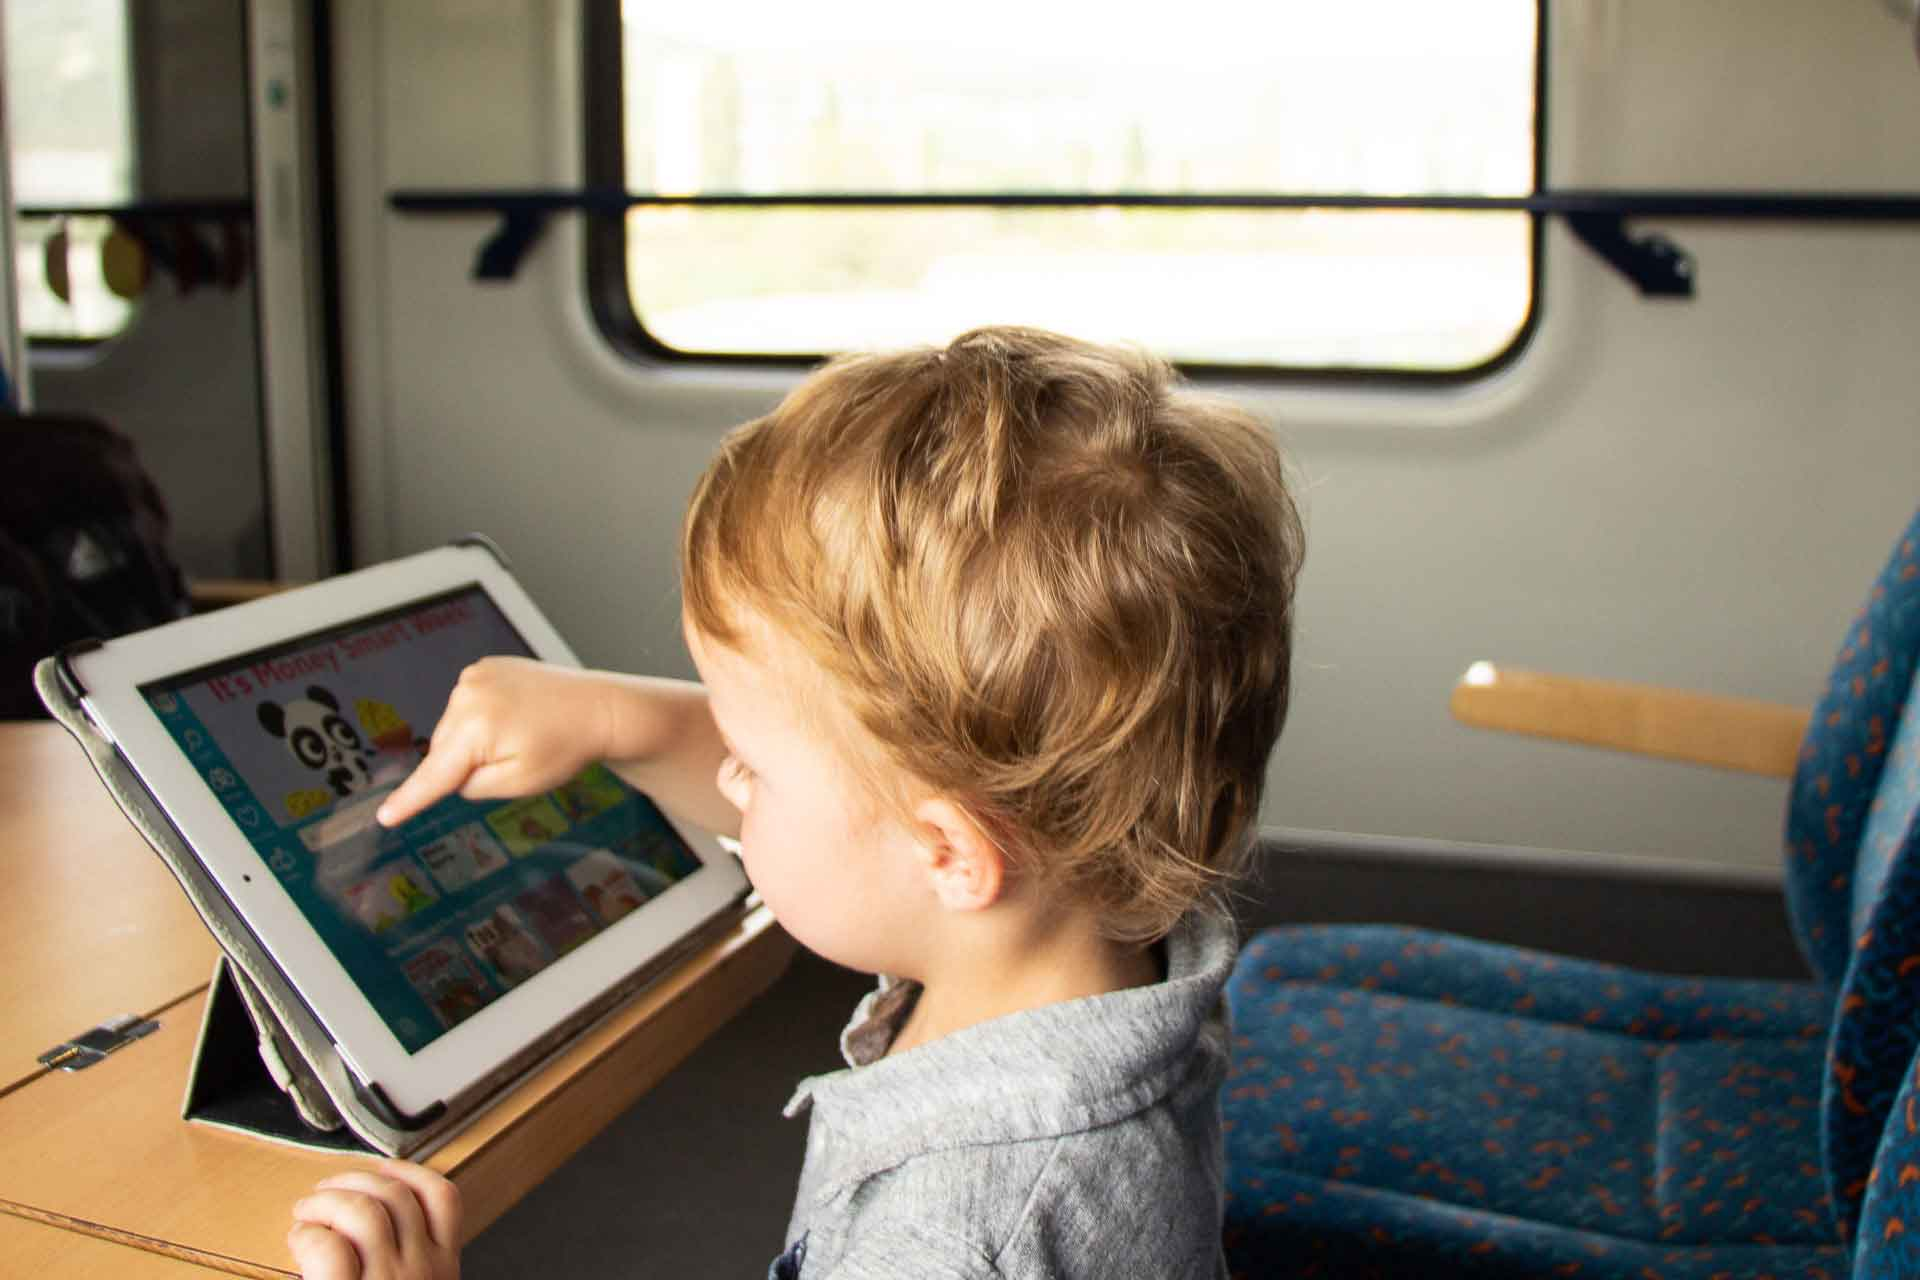 Epic books for kids - Digital Library for Travel on train